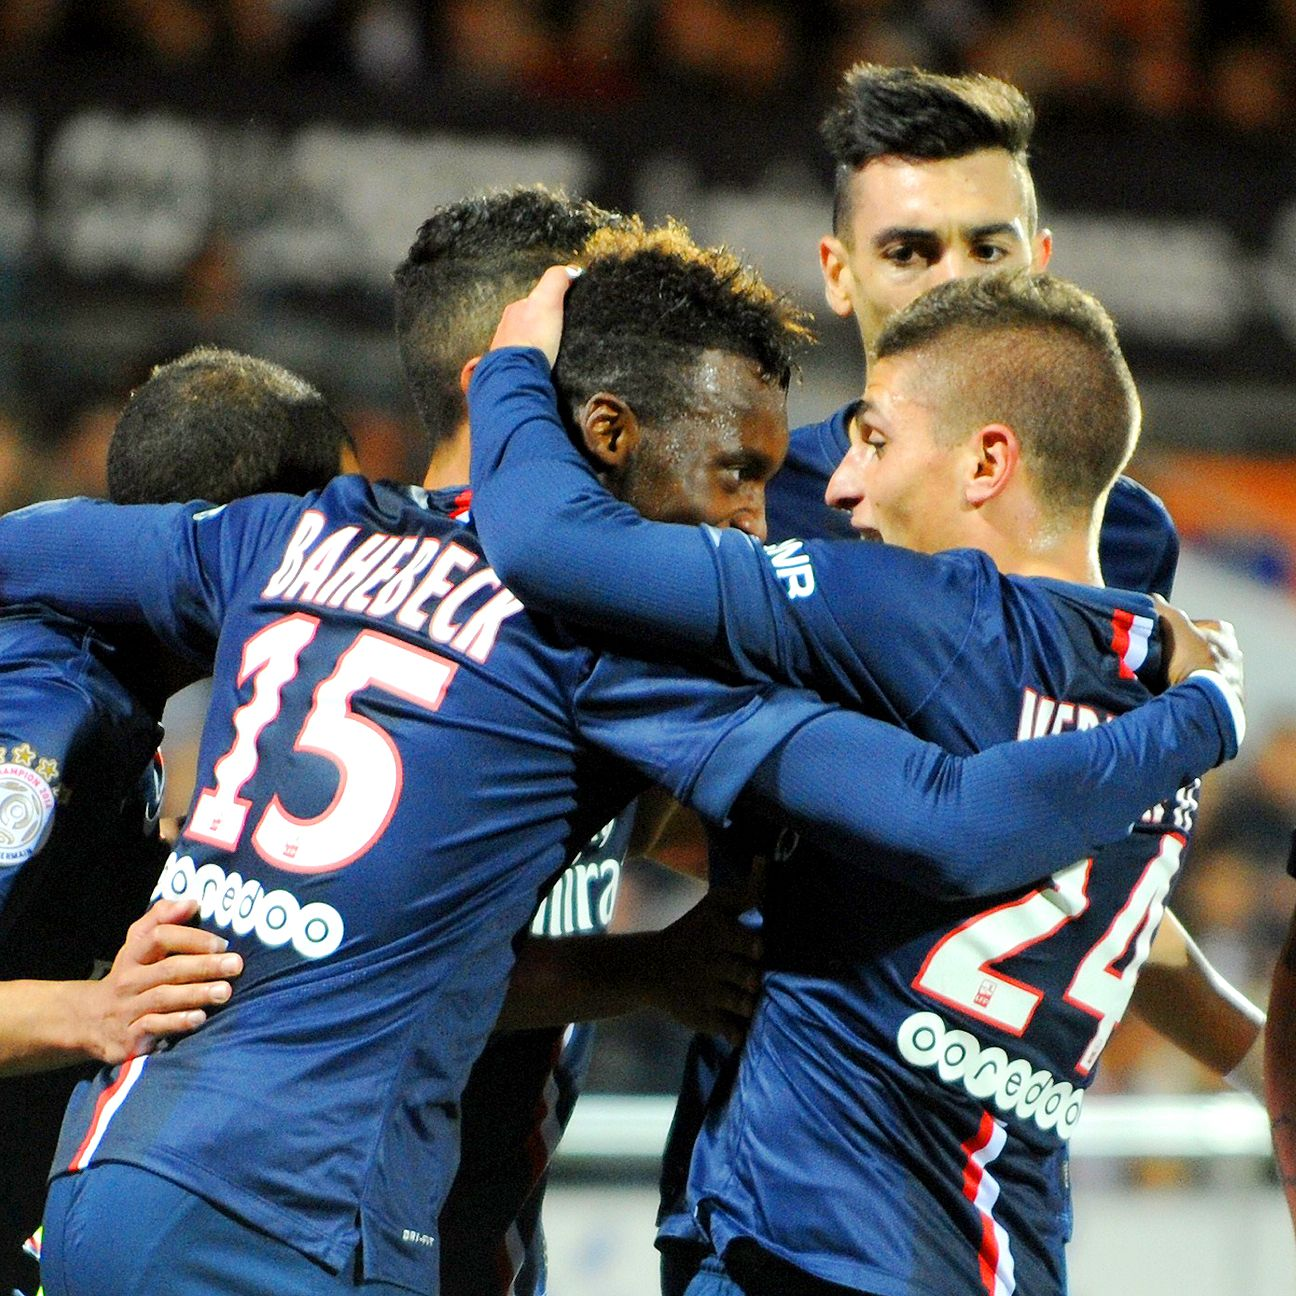 Jean-Christophe Bahebeck's second half heroics paved the way for PSG's comeback win over Lorient.